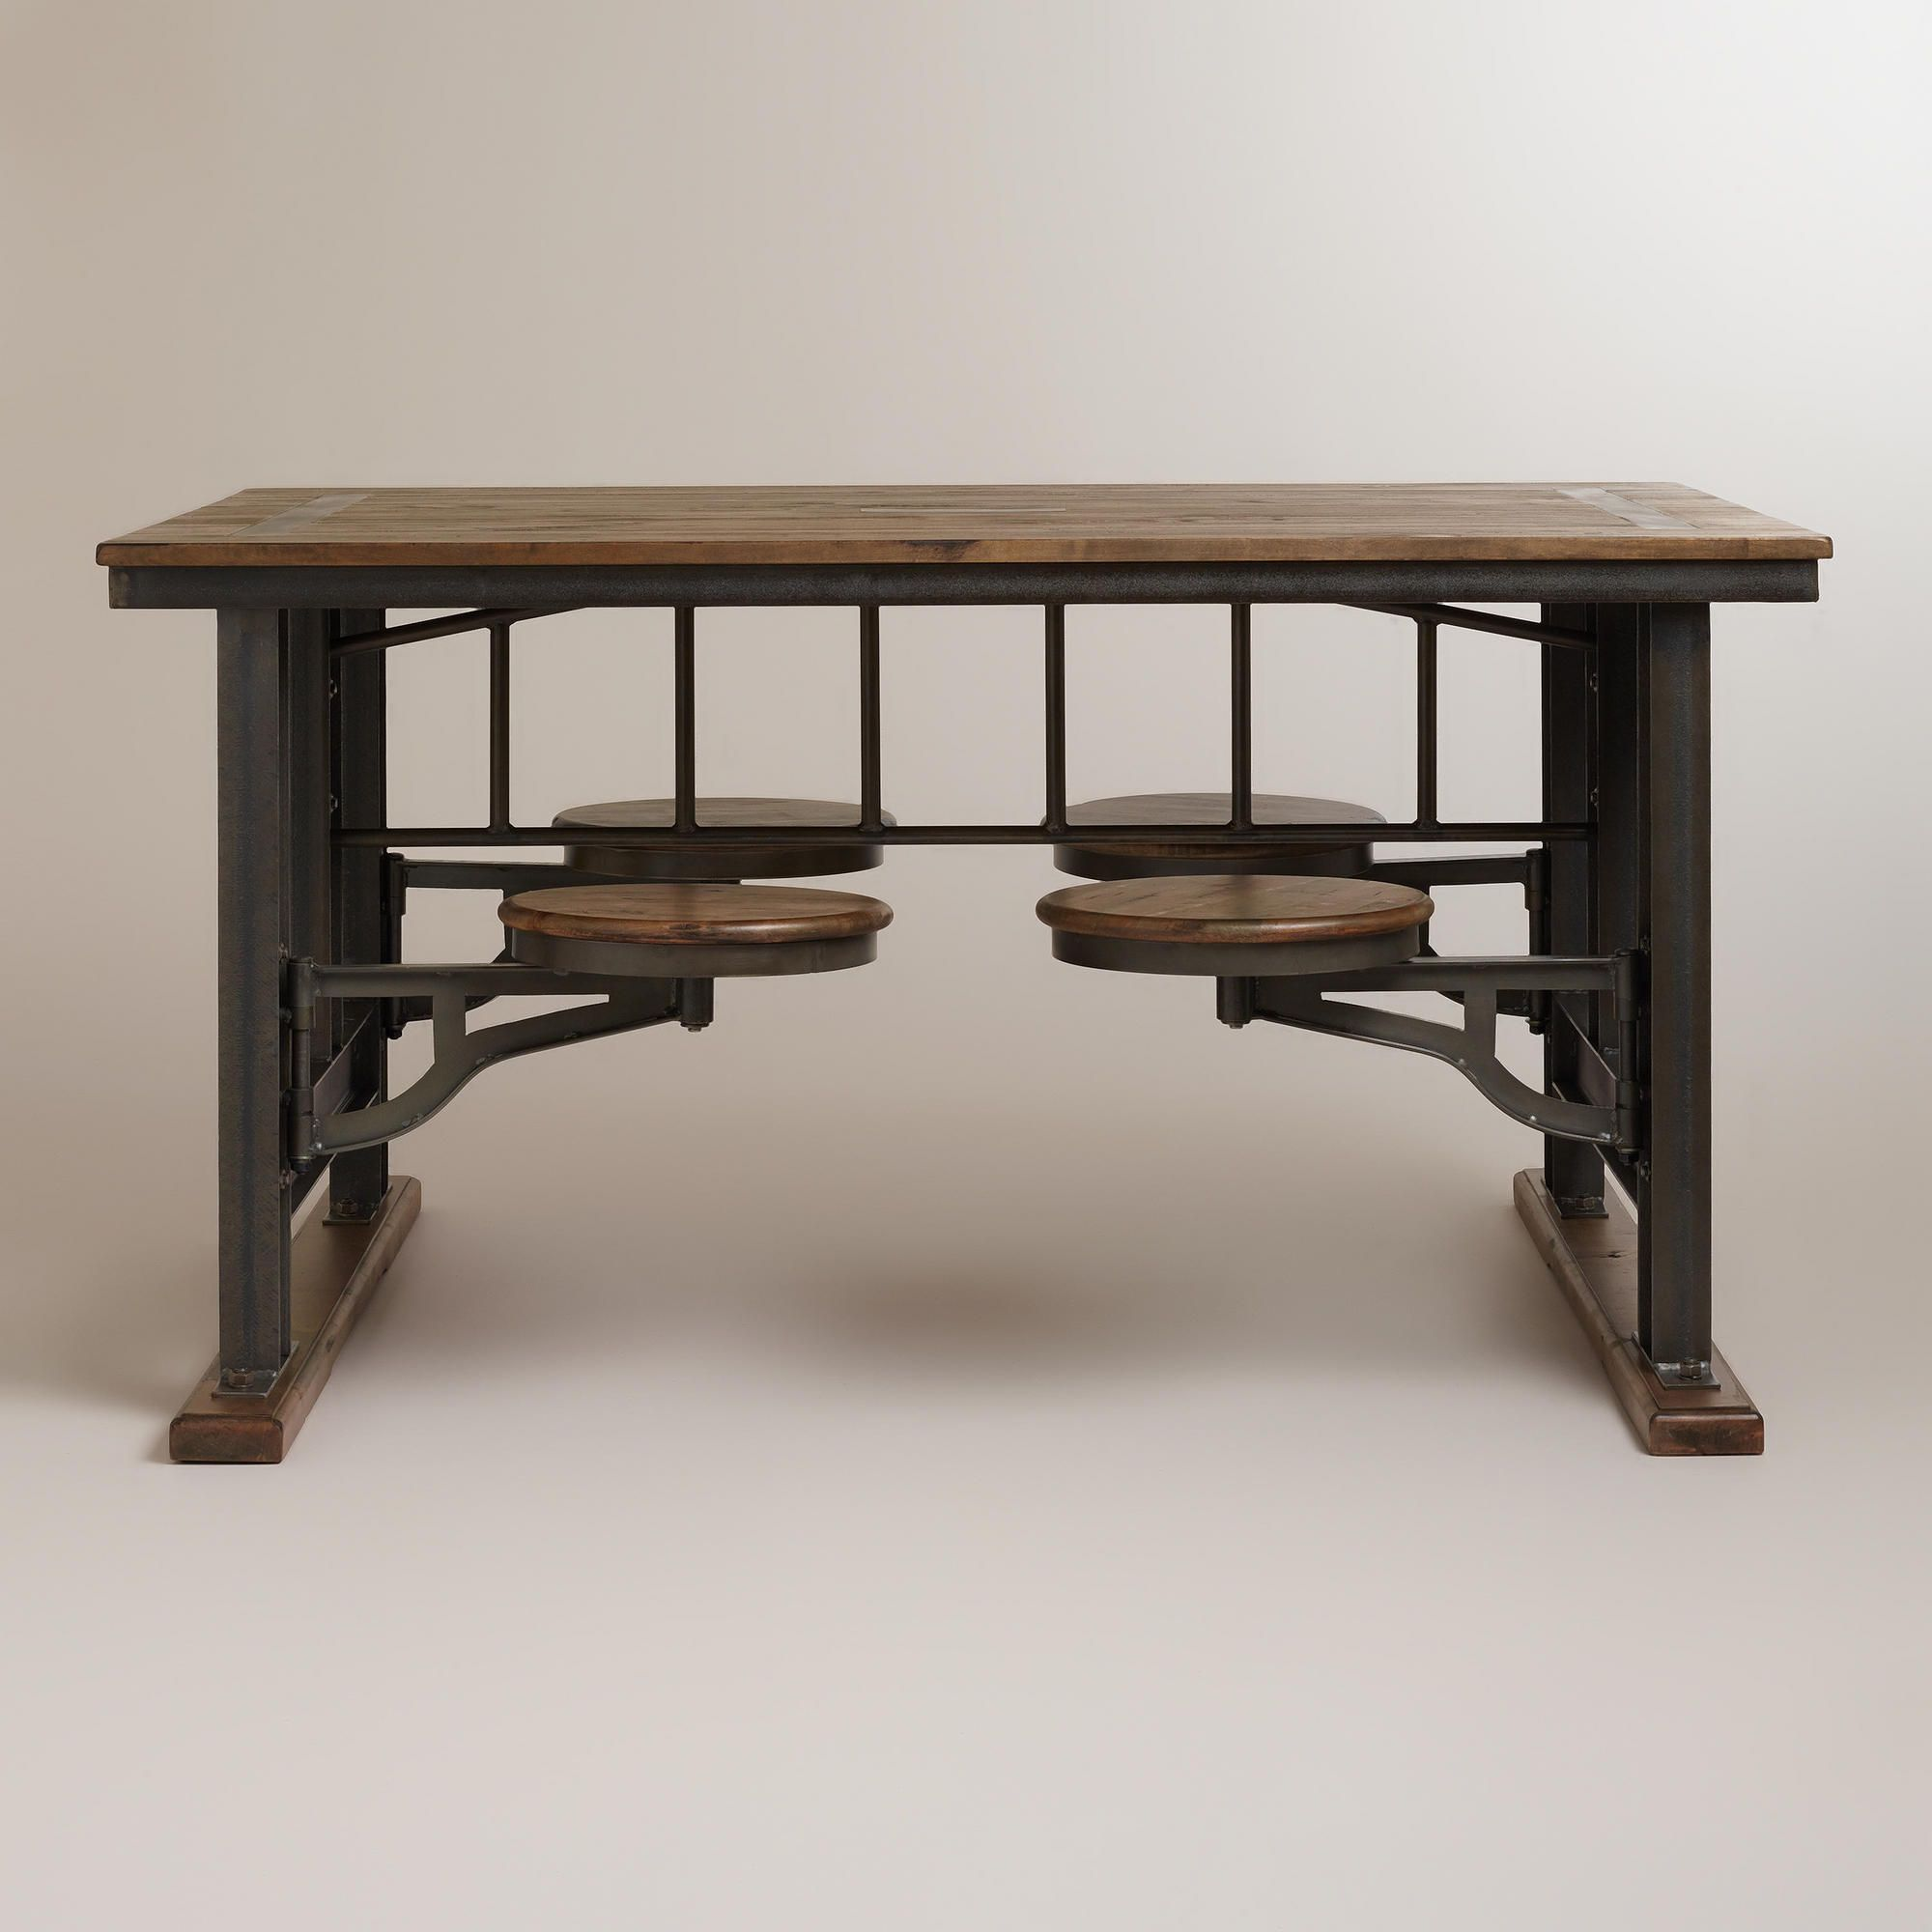 Galvin Cafeteria Table Cafeteria Table Kitchen Table Metal Furniture